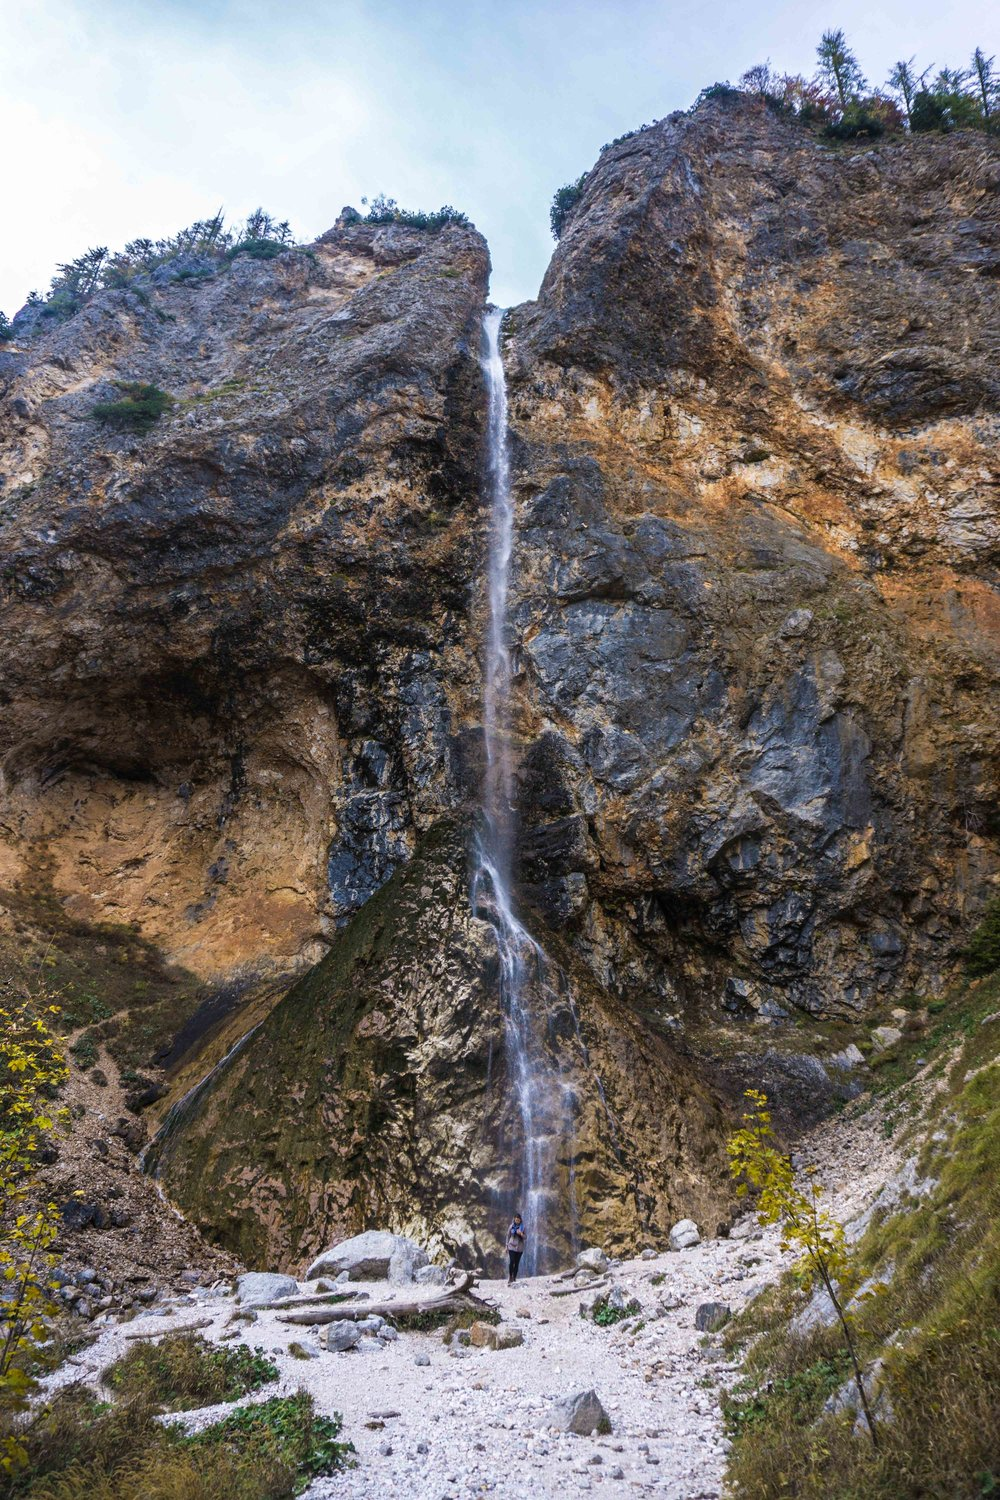 Rinka Waterfall (see me at the bottom for scale)